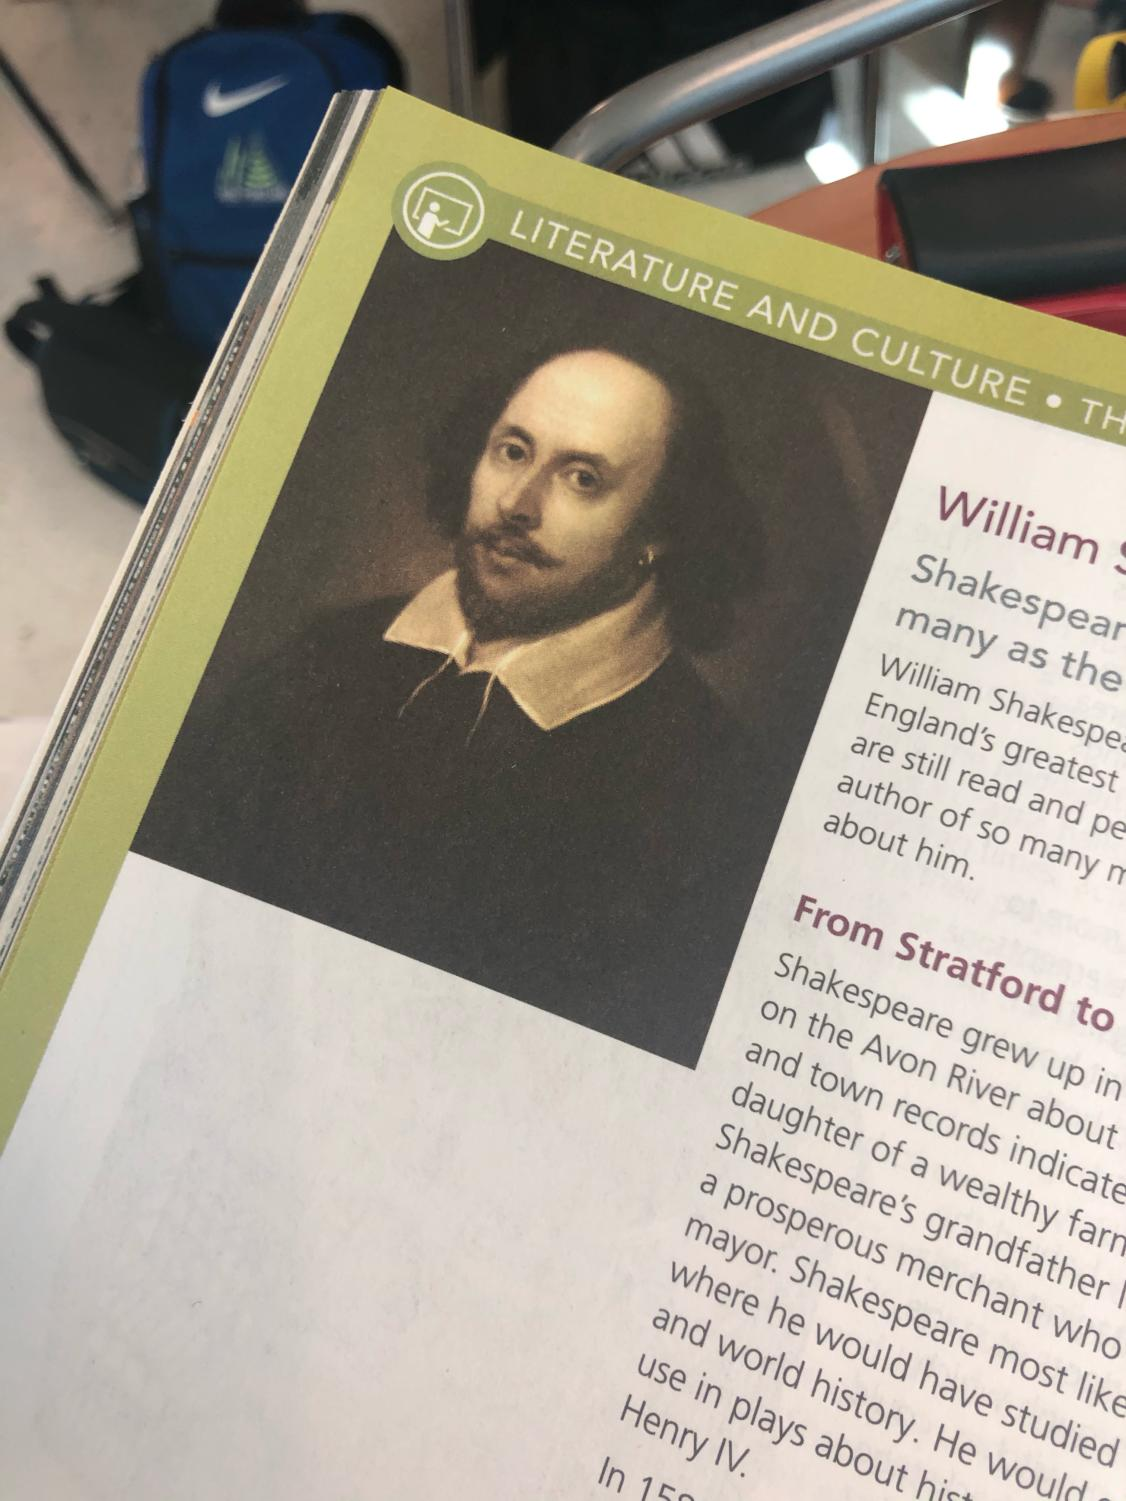 Freshman english text book used in ERHS classes. The page features a Shakespeare portrait.